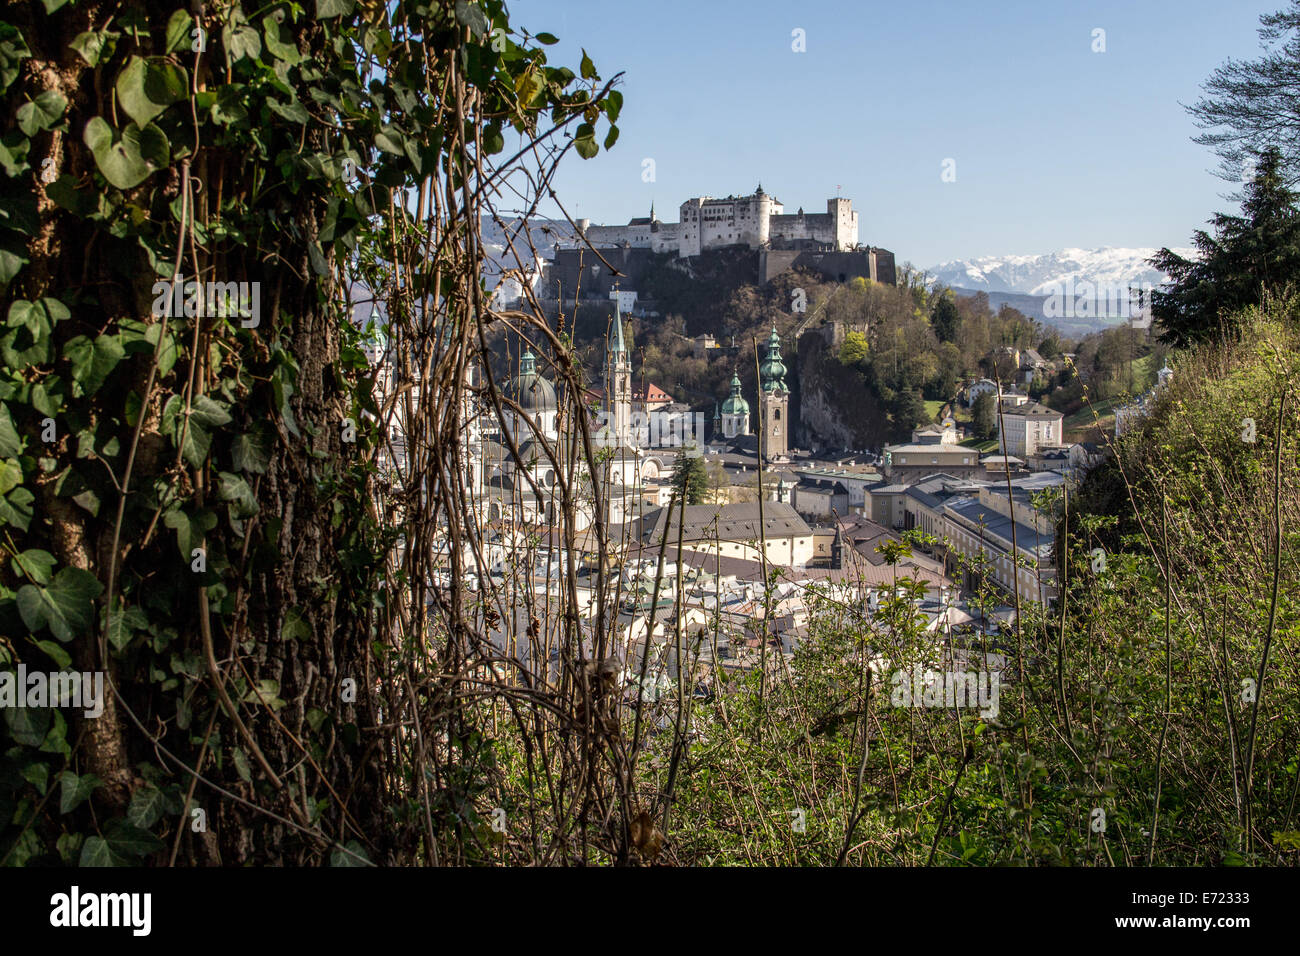 Austria: Historic Centre of the City of Salzburg. Photo from 30 March 2014. - Stock Image